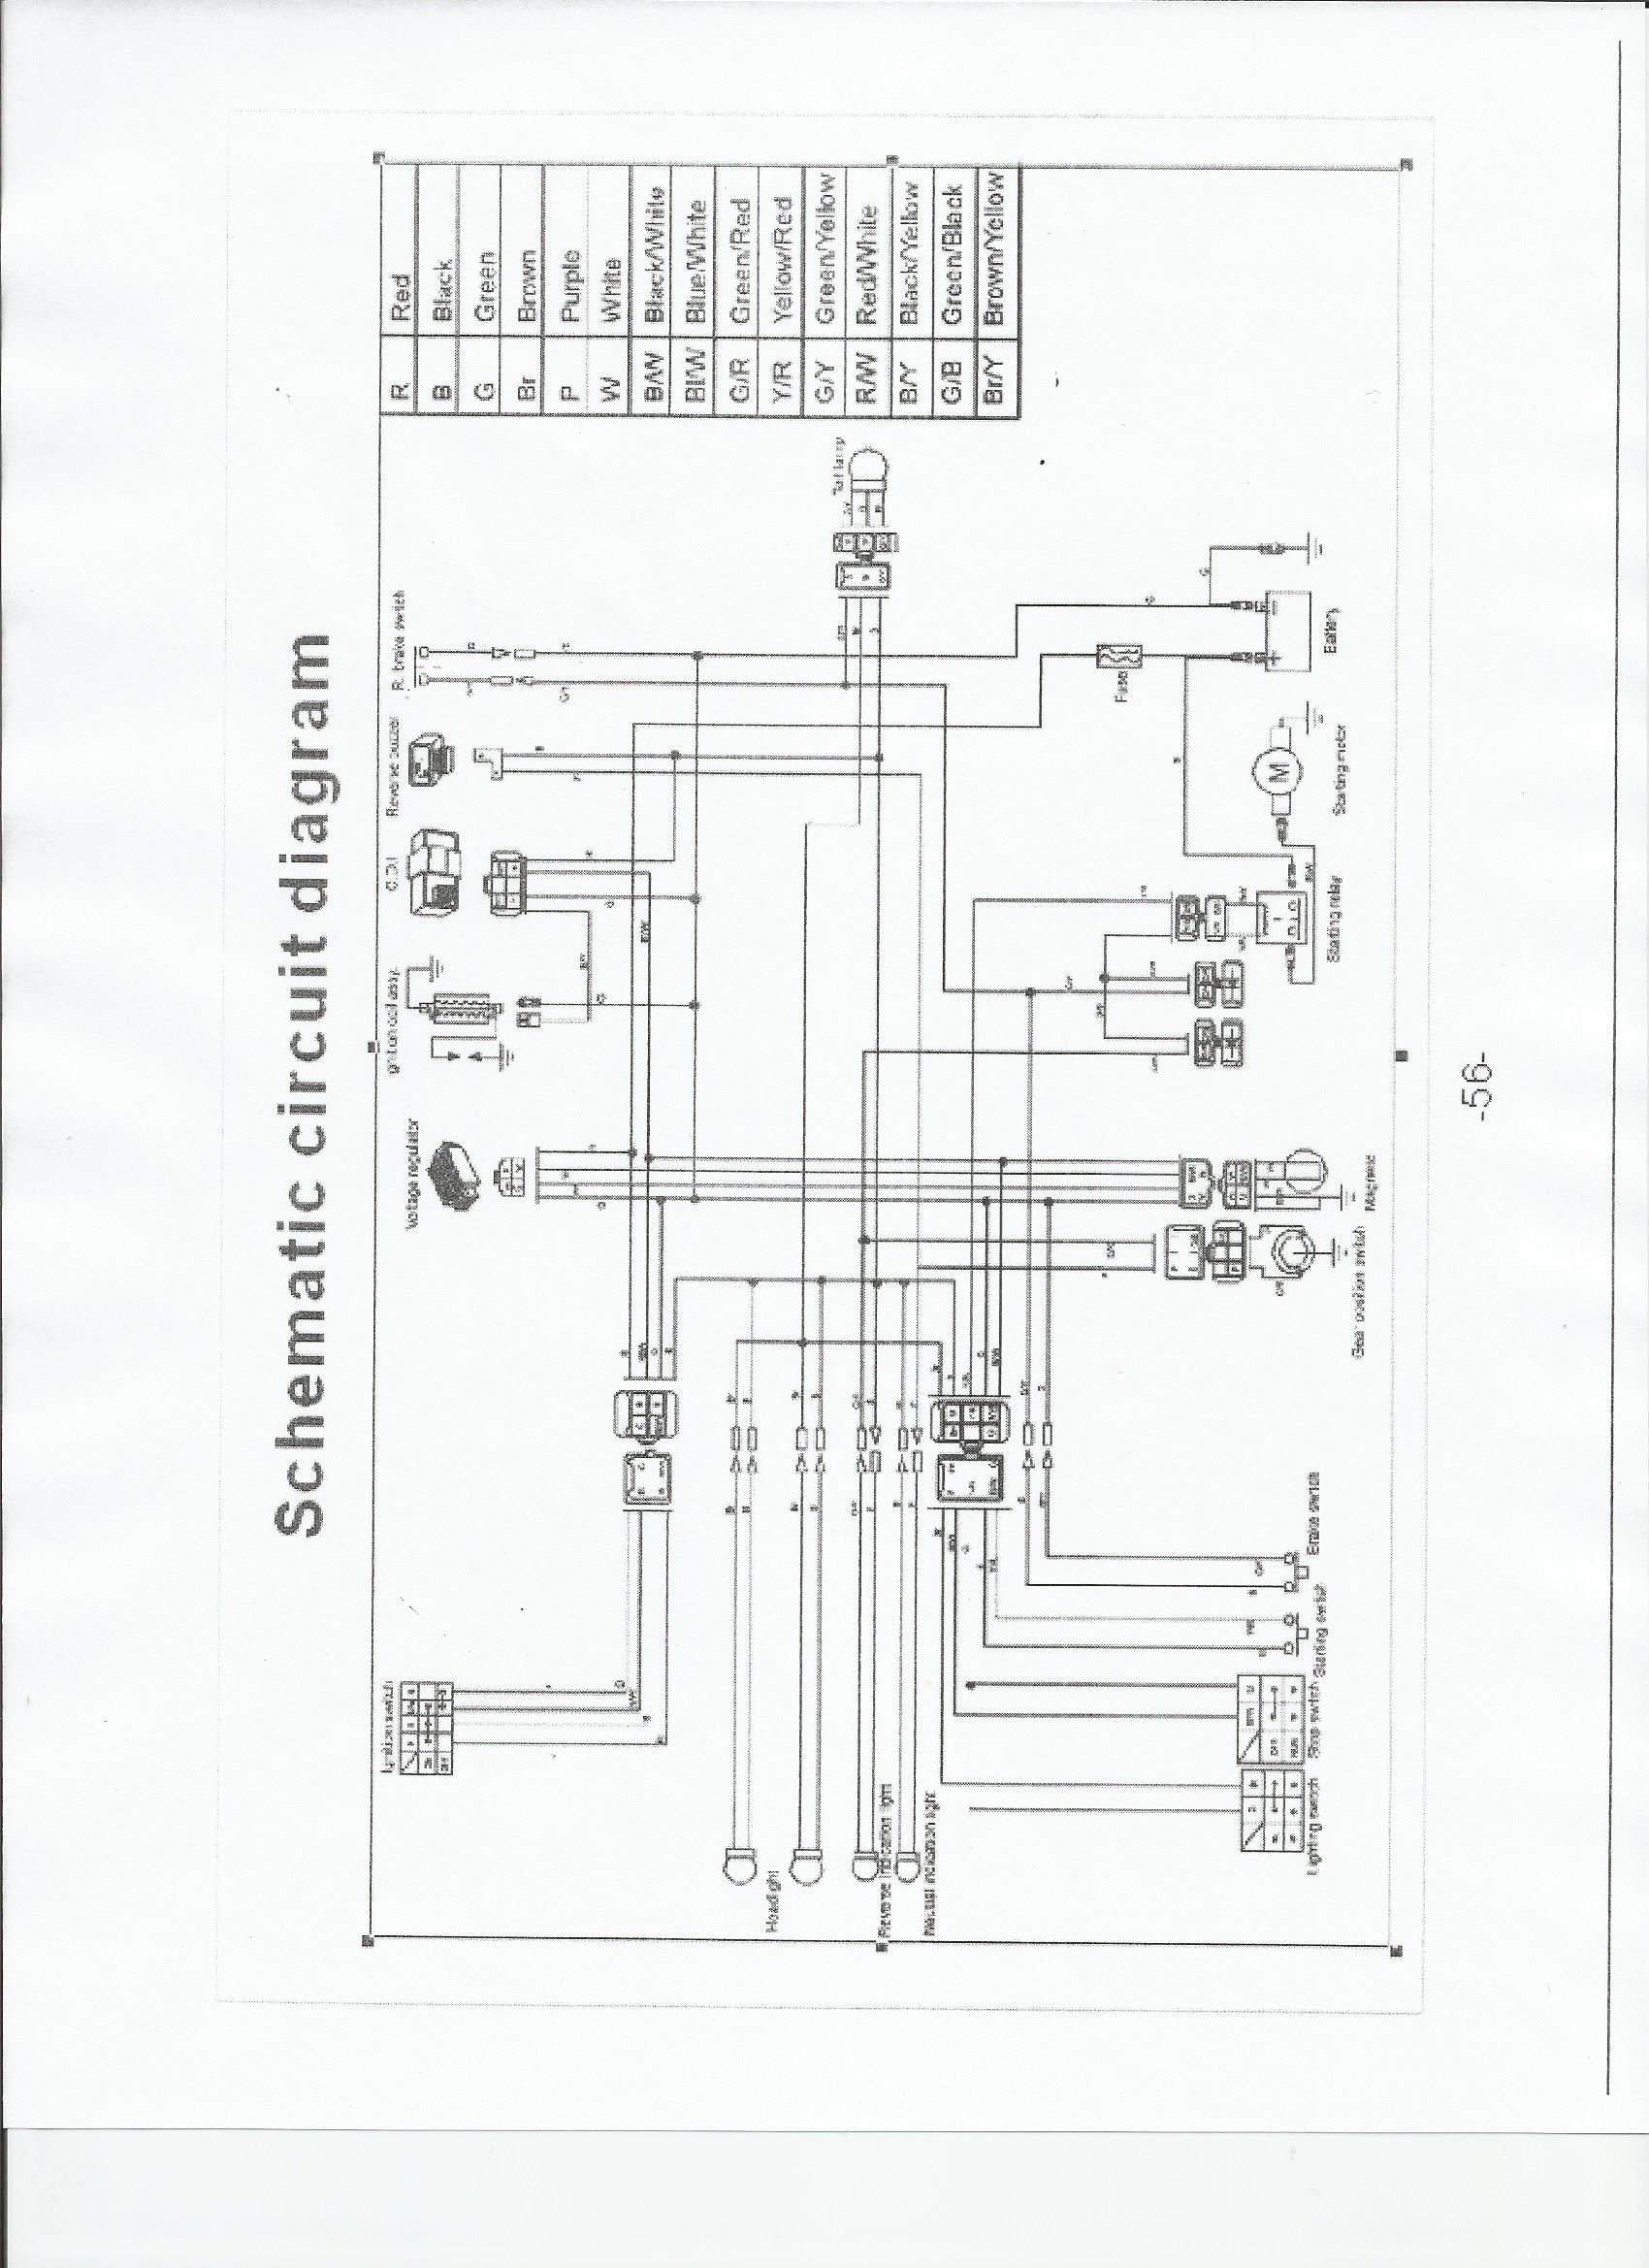 tao tao wiring schematic taotao mini and youth atv wiring schematic familygokarts support wiring diagram for chinese 110 atv at soozxer.org